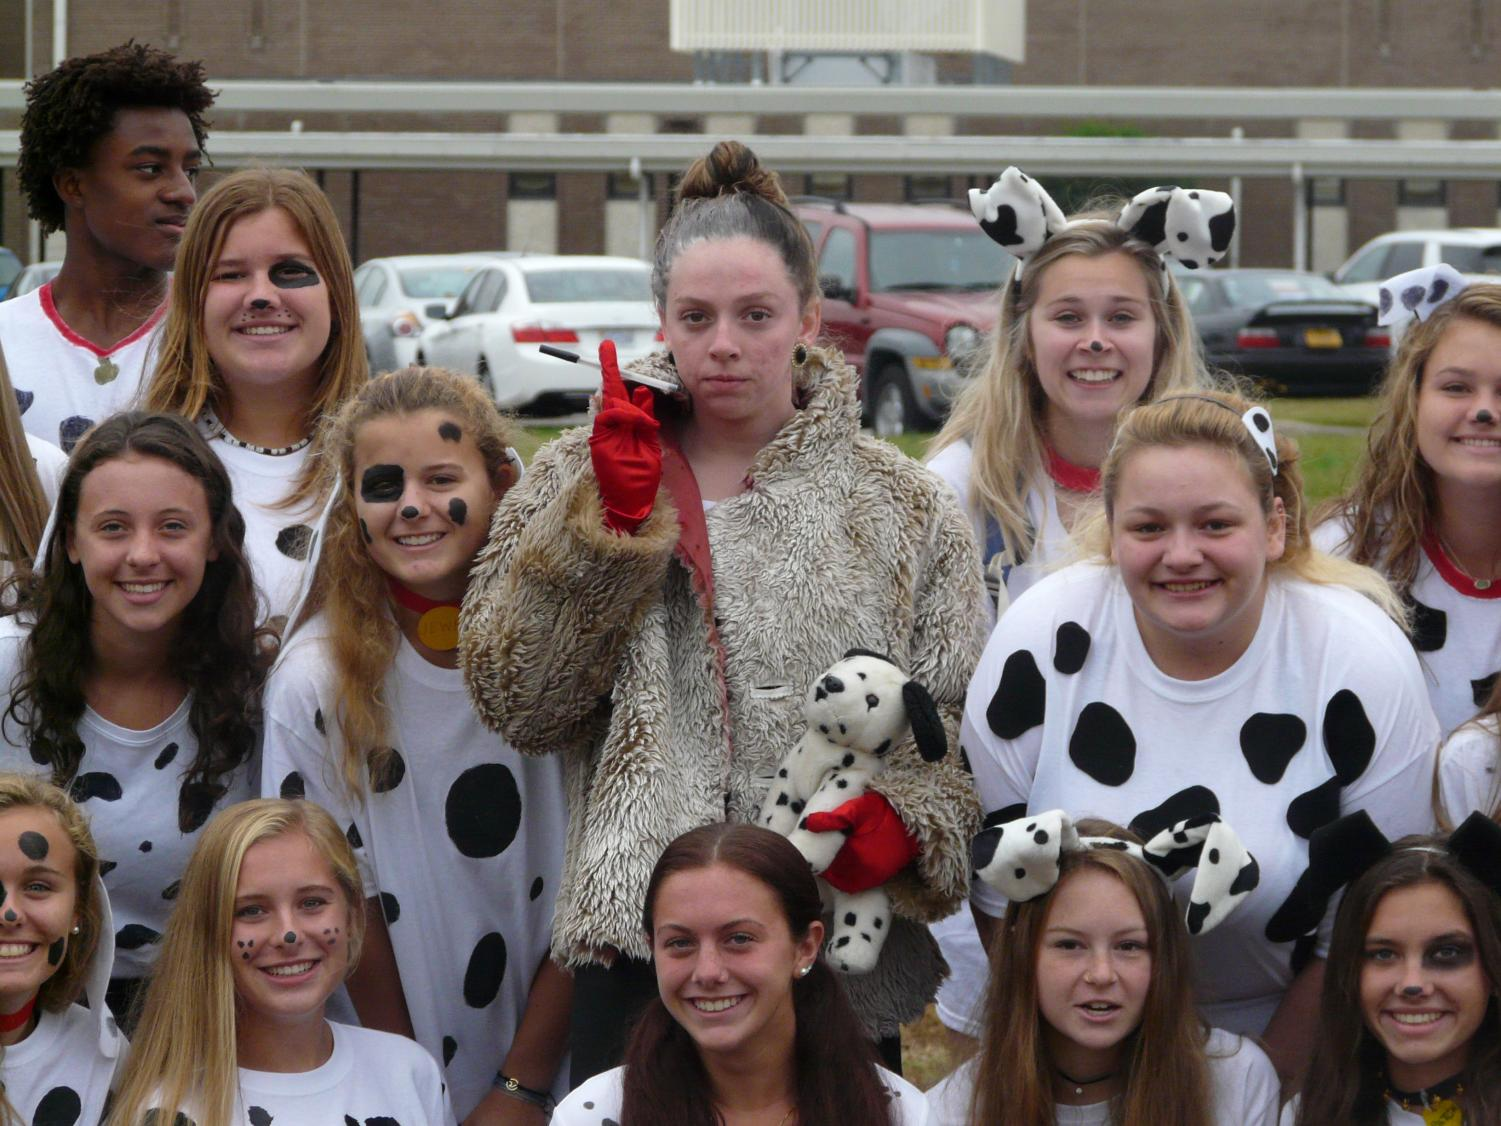 Delaney+Younger%2C+pictured+here+as+Cruella+de+Vil%2C+was+the+mastermind+behind+a+101+Dalmatians+costume-+with+101+Menchville+students+participating.